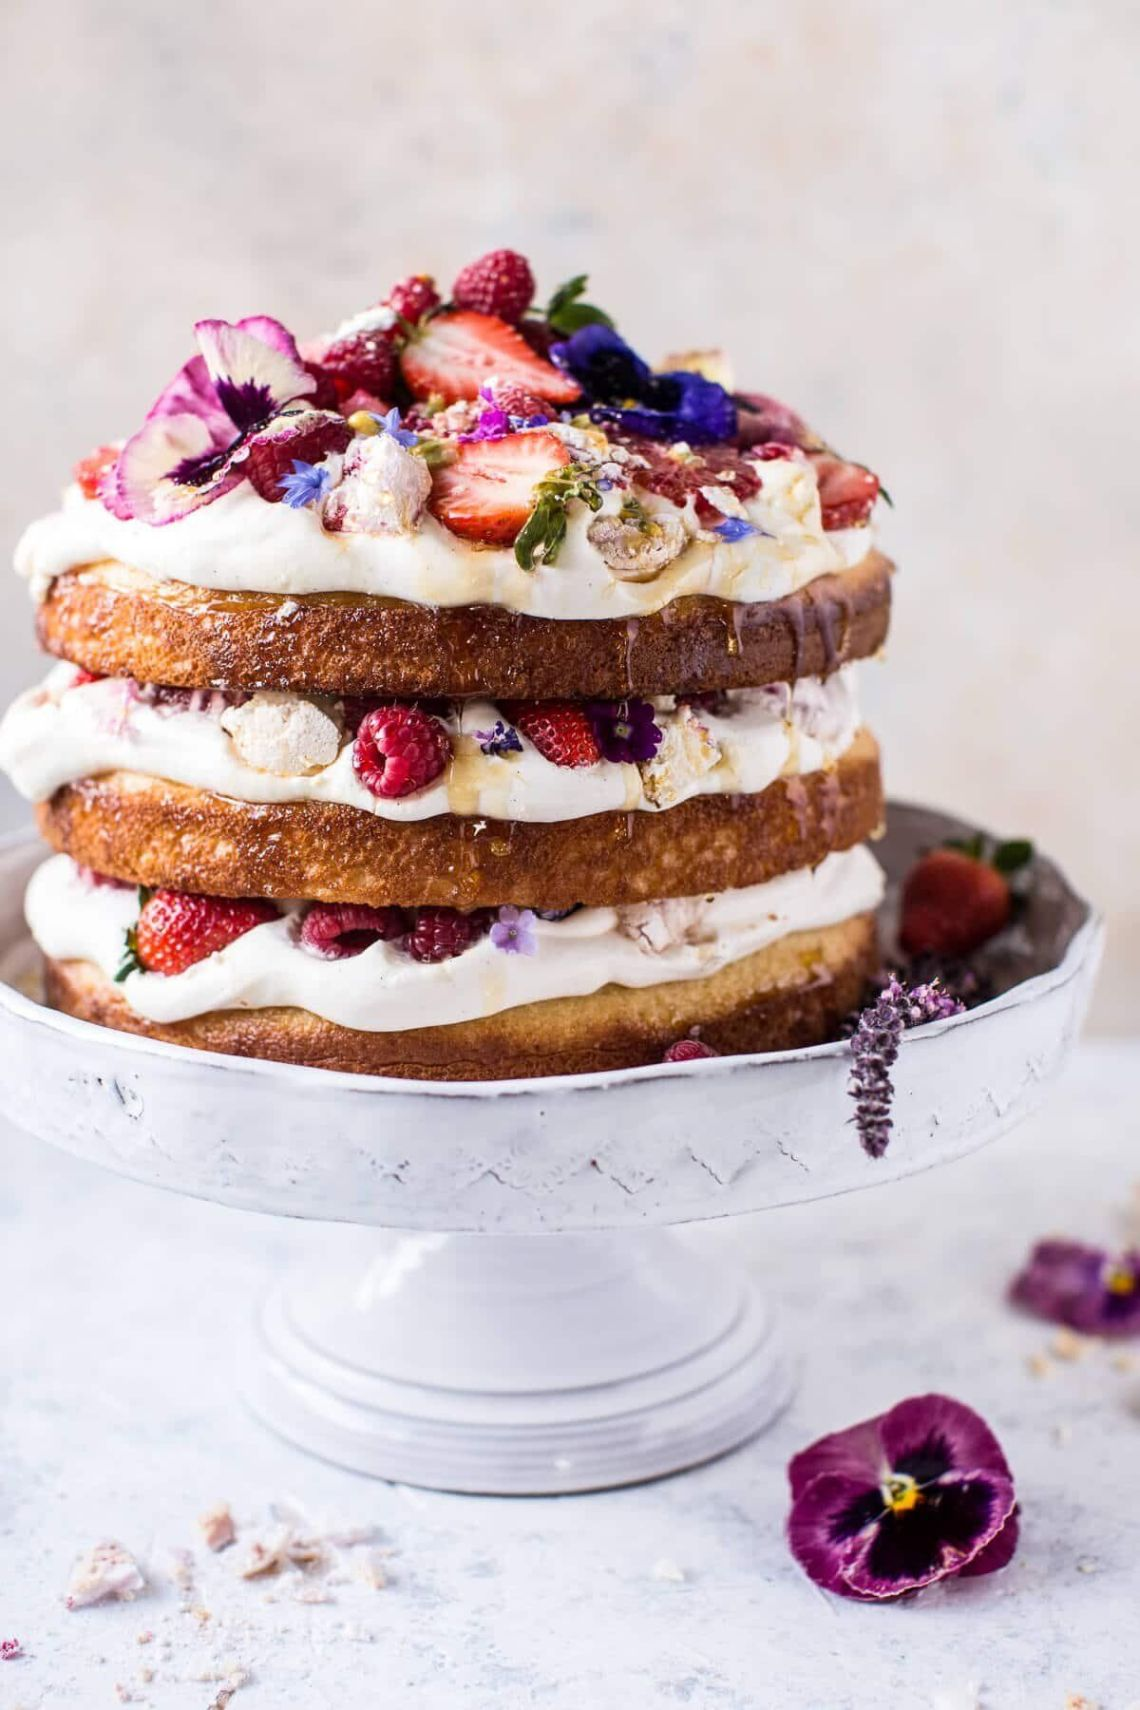 Get the Coconut Eton Mess Cake With Whipped Ricotta Cream recipe from Half Baked Harvest